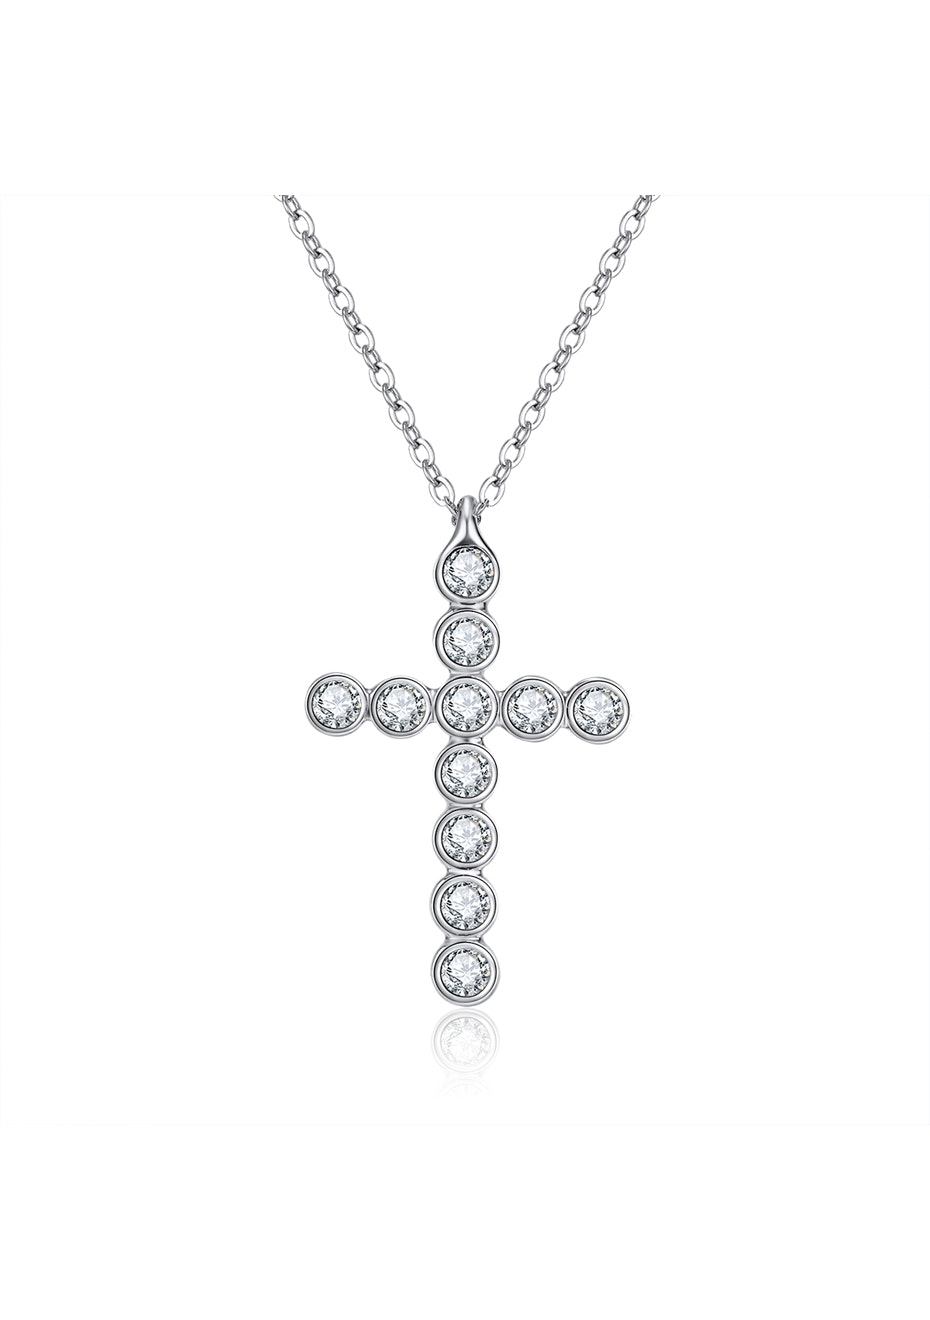 Cross Pendant Necklace Embellished with Crystals from Swarovski